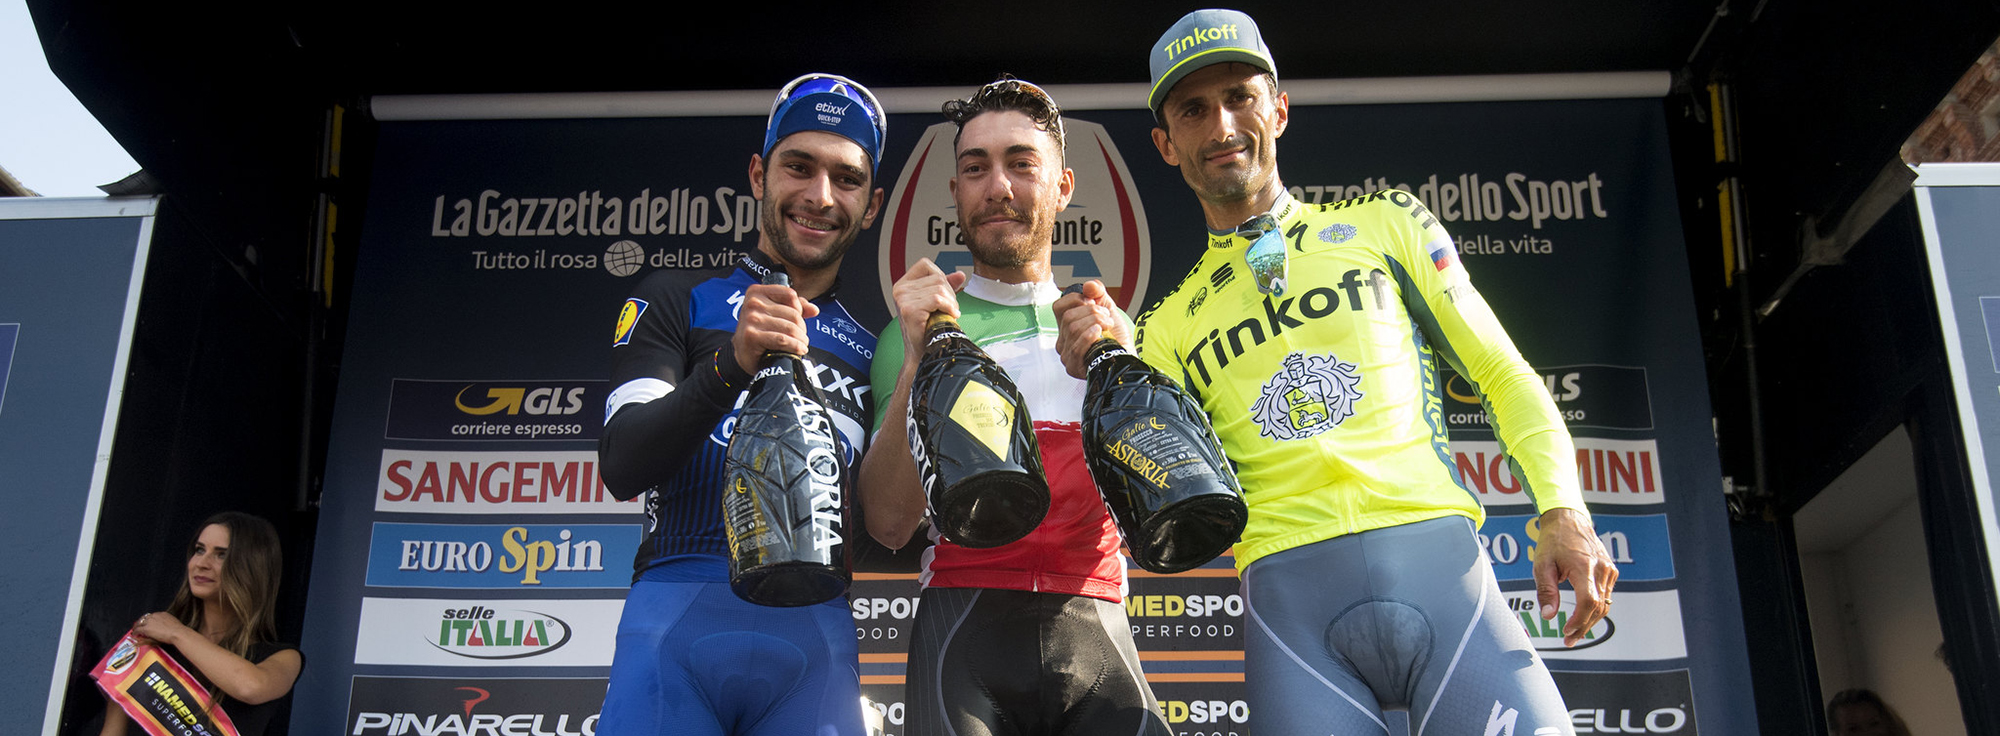 (L-R) Fernando Gaviria of Etixx Quick-Step Team, Giacomo Nizzolo of Italia Team and Daniele Bennati Of Tinkoff Team on the finish line of Gran Piemonte cycling race from Diano D'Adda to Aglie', 29 September 2016. ANSA/CLAUDIO PERI